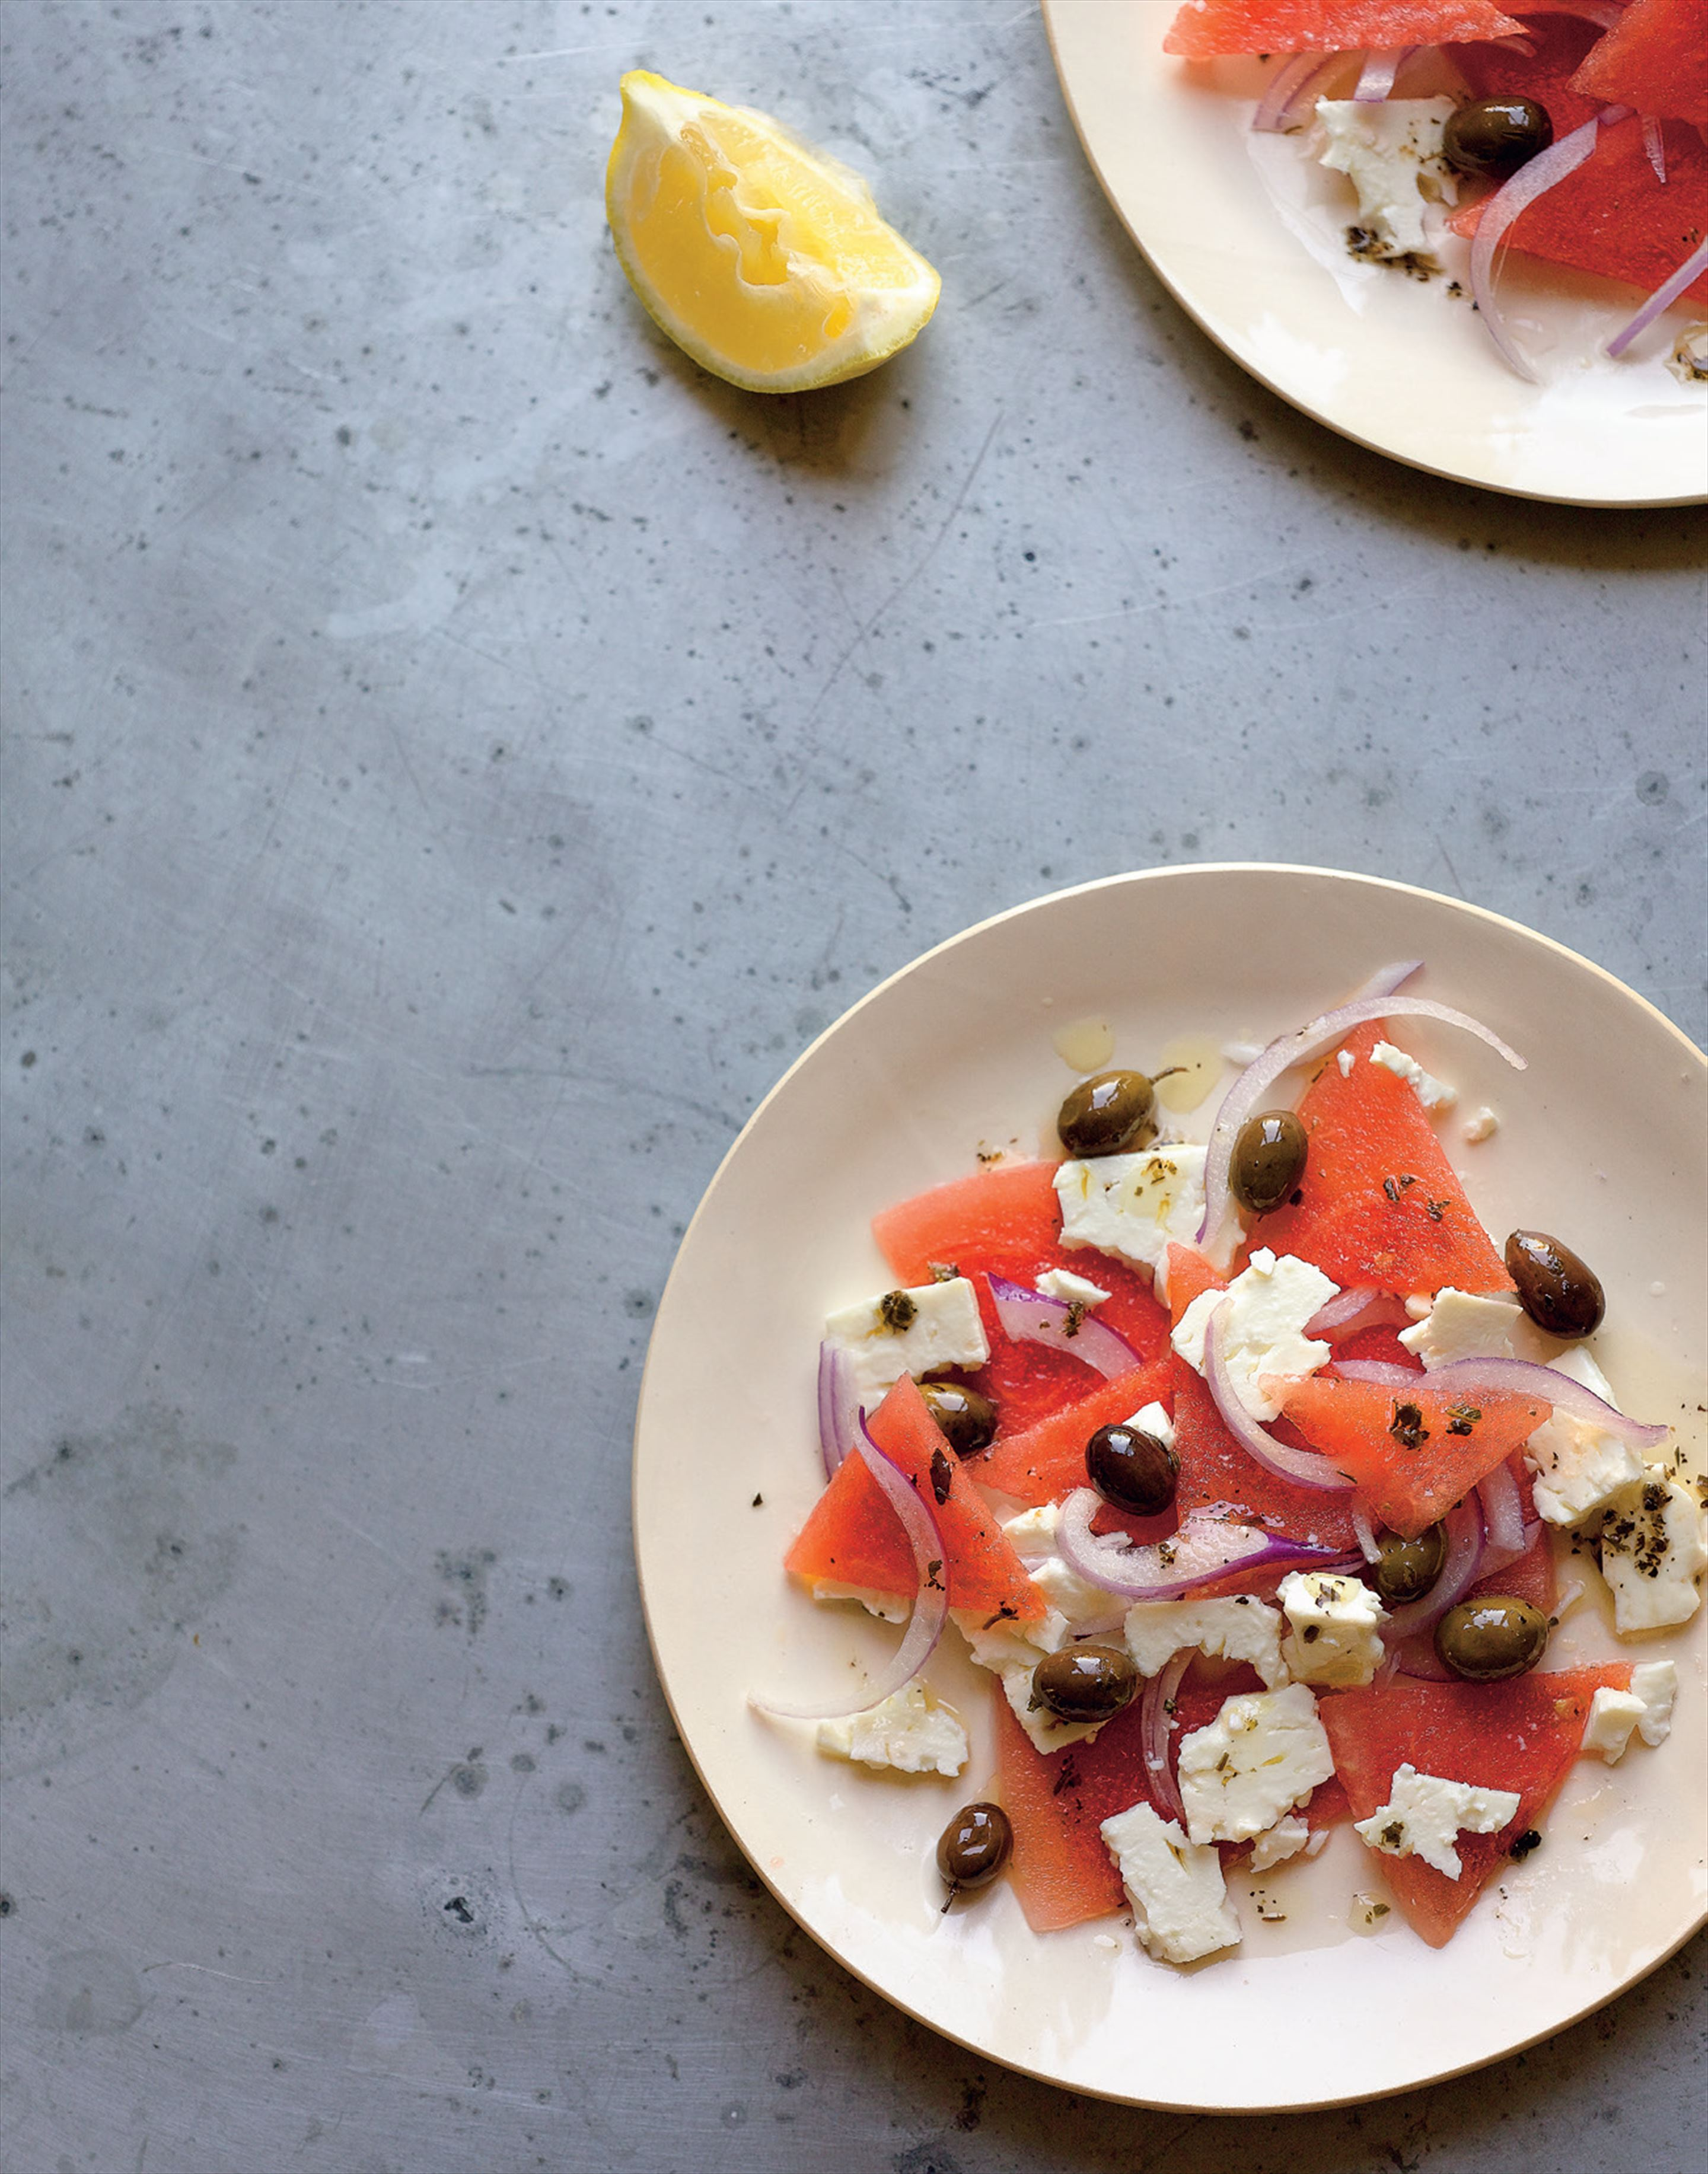 Feta, watermelon, red onion and black olives